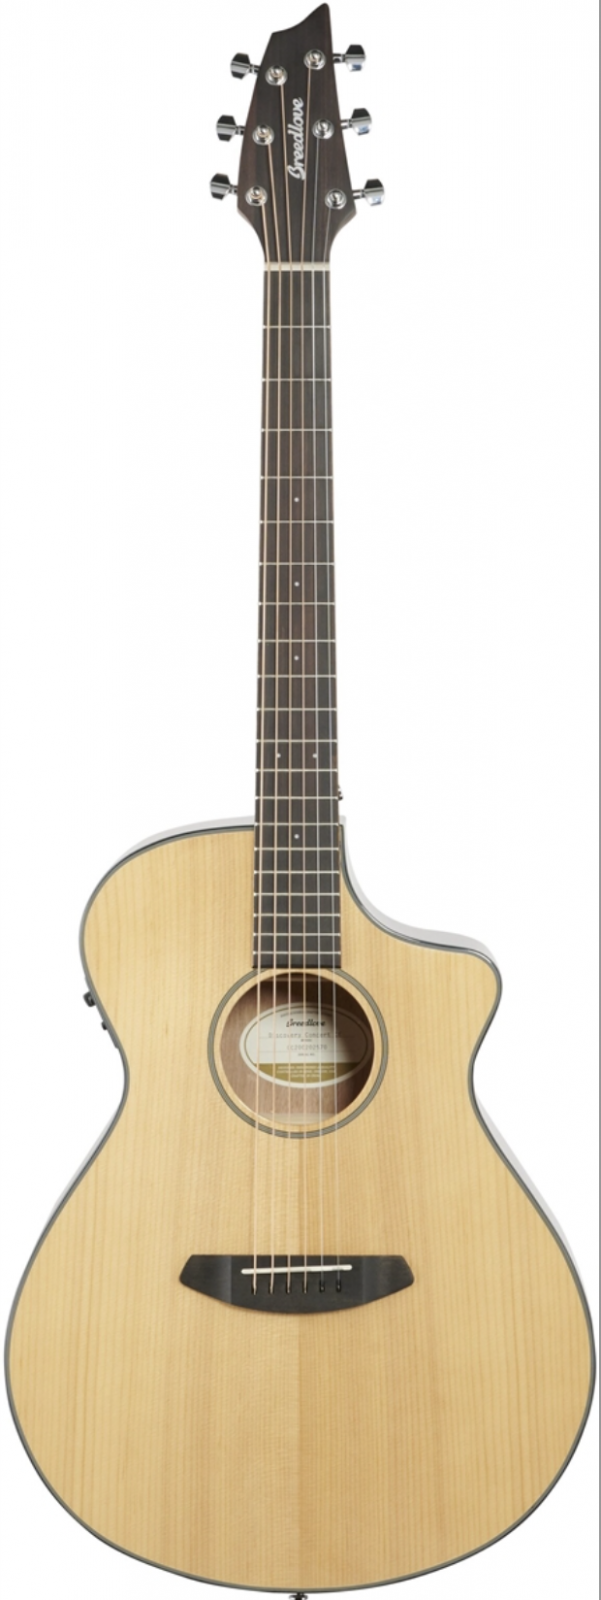 BREEDLOVE DISCOVERY DSCN01CESSMA(3) ACOUSTIC-ELECTRIC GUITAR CONCERT CE SITKA-MAHOGANY